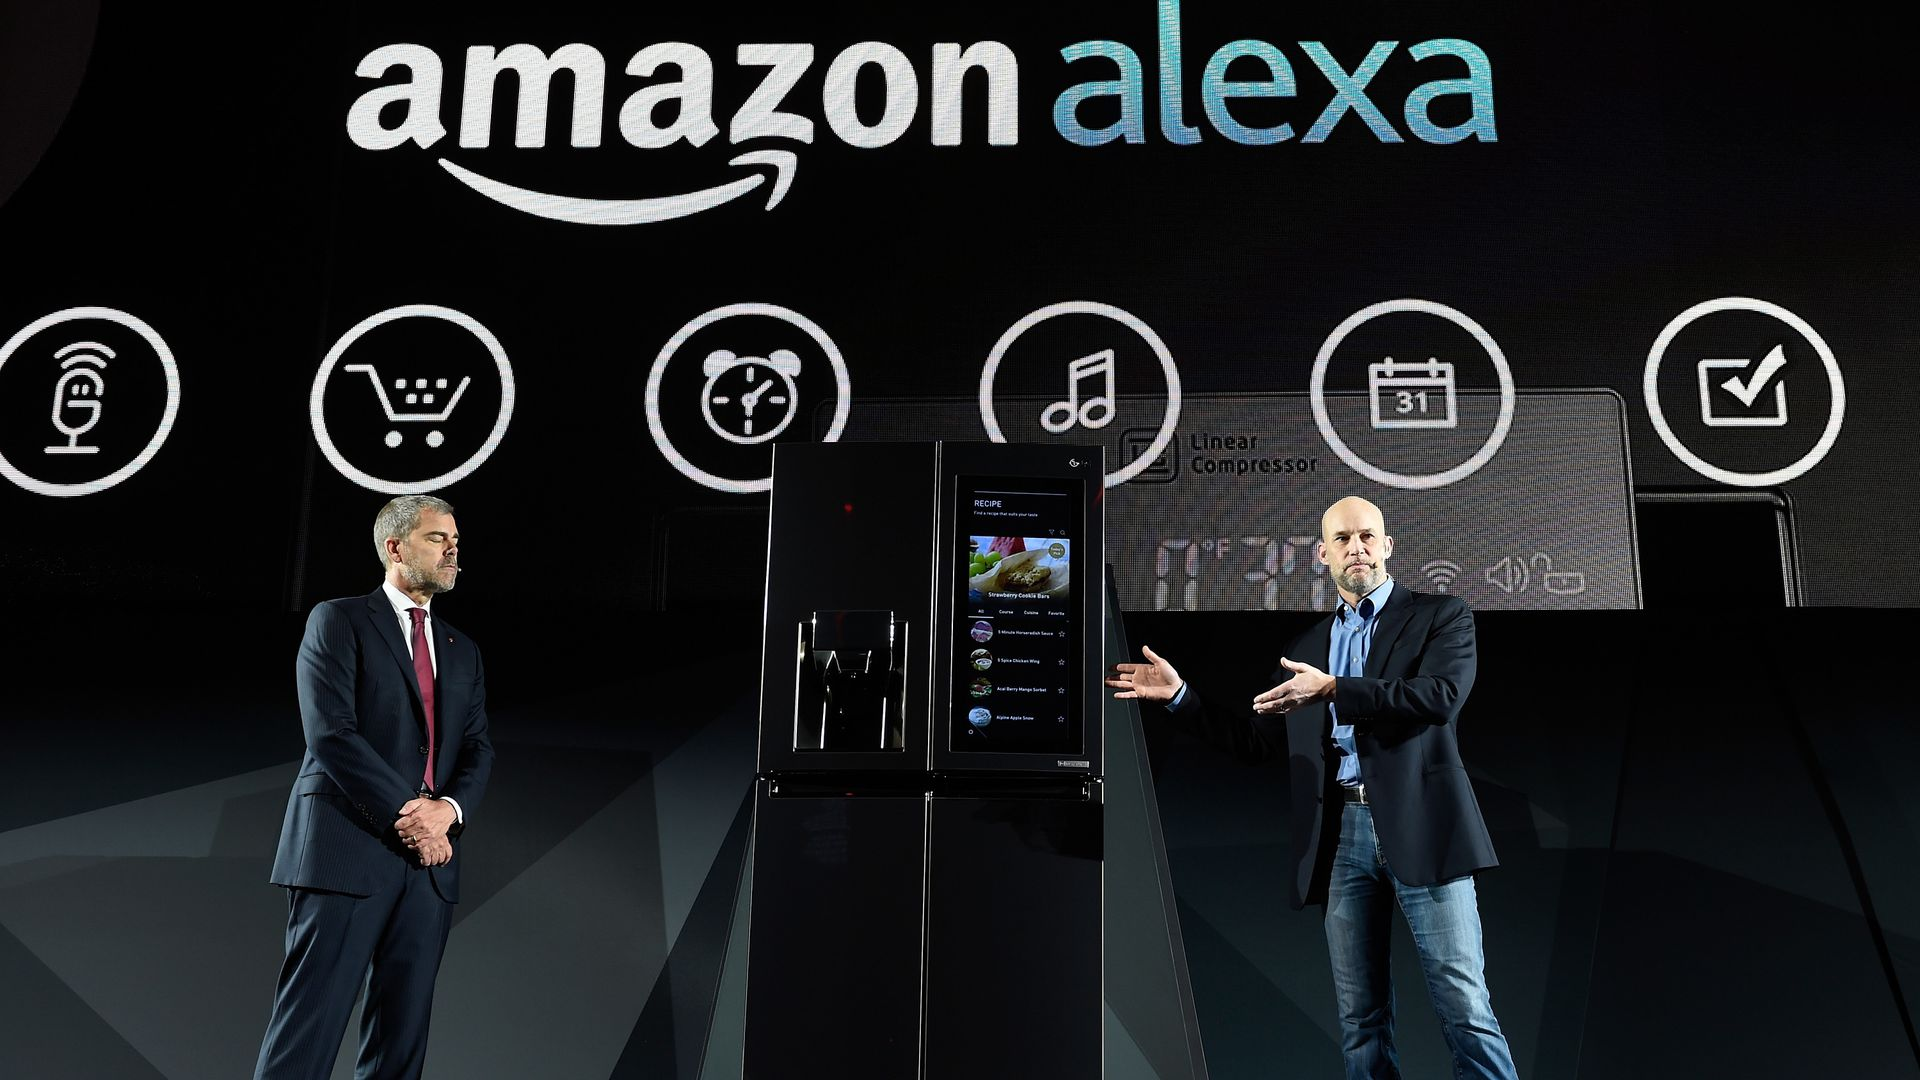 Amazon executives on stage introduce new Alexa products